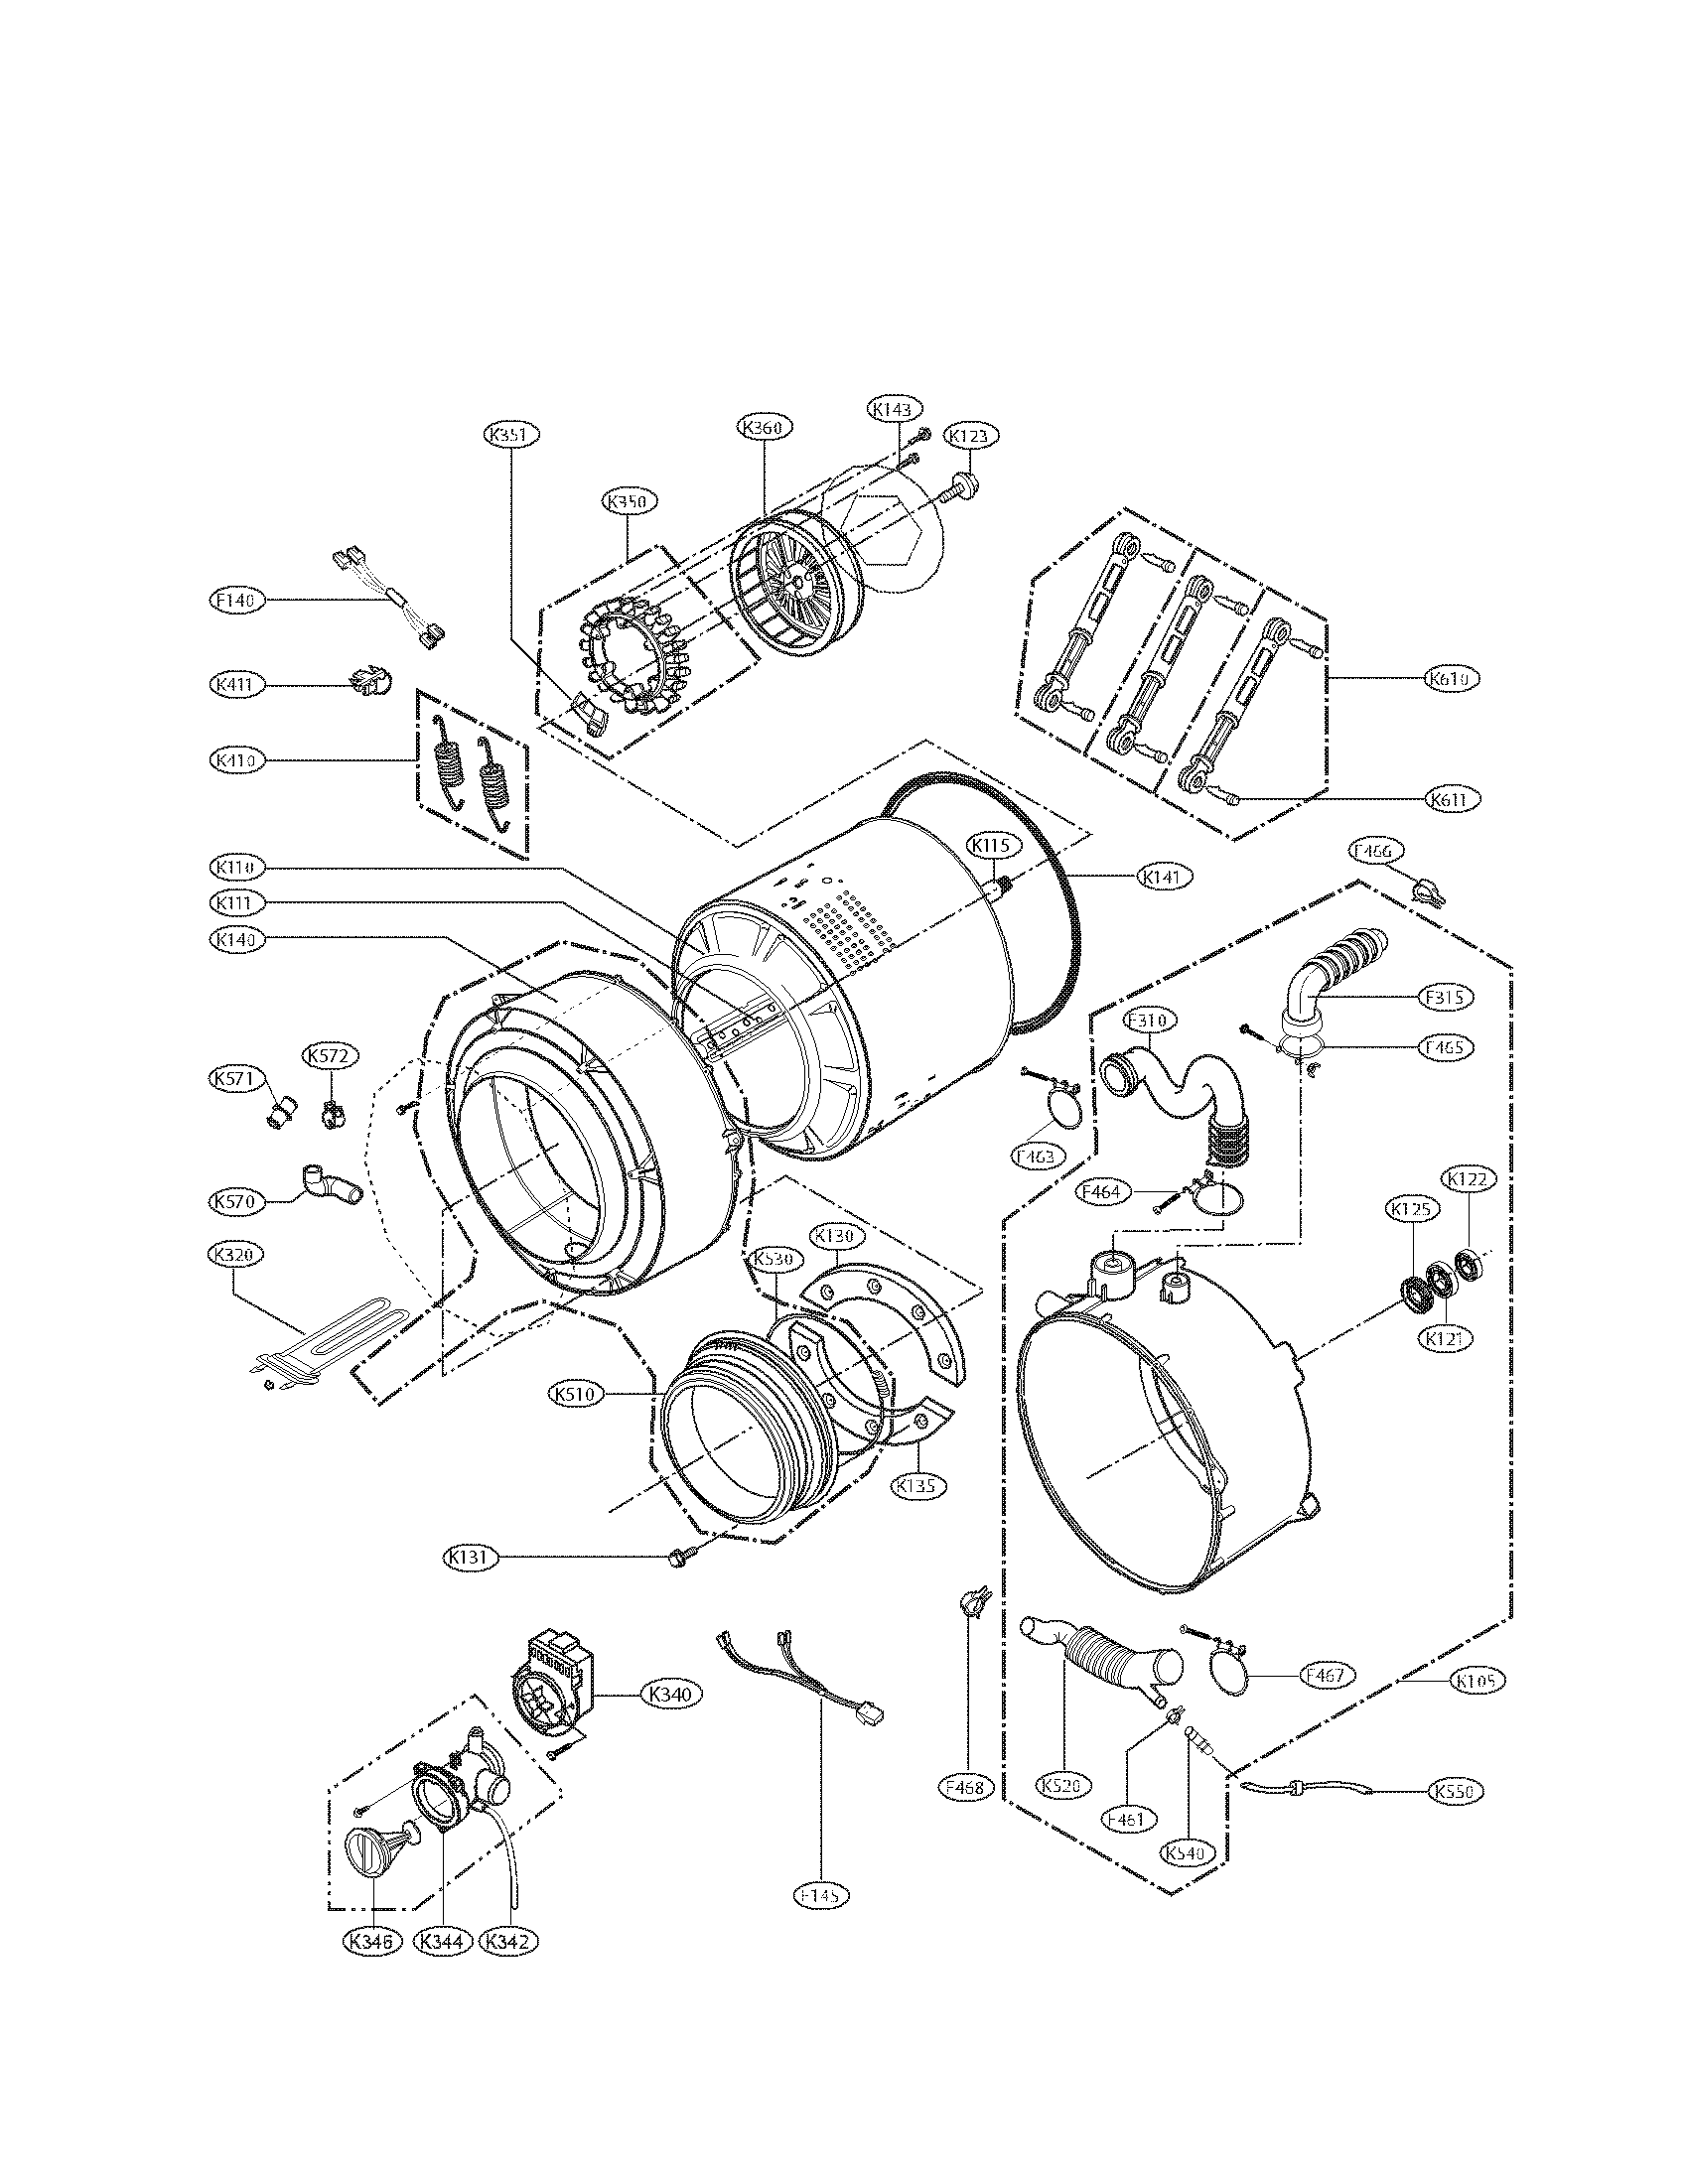 DRUM AND TUB PARTS Diagram & Parts List for Model